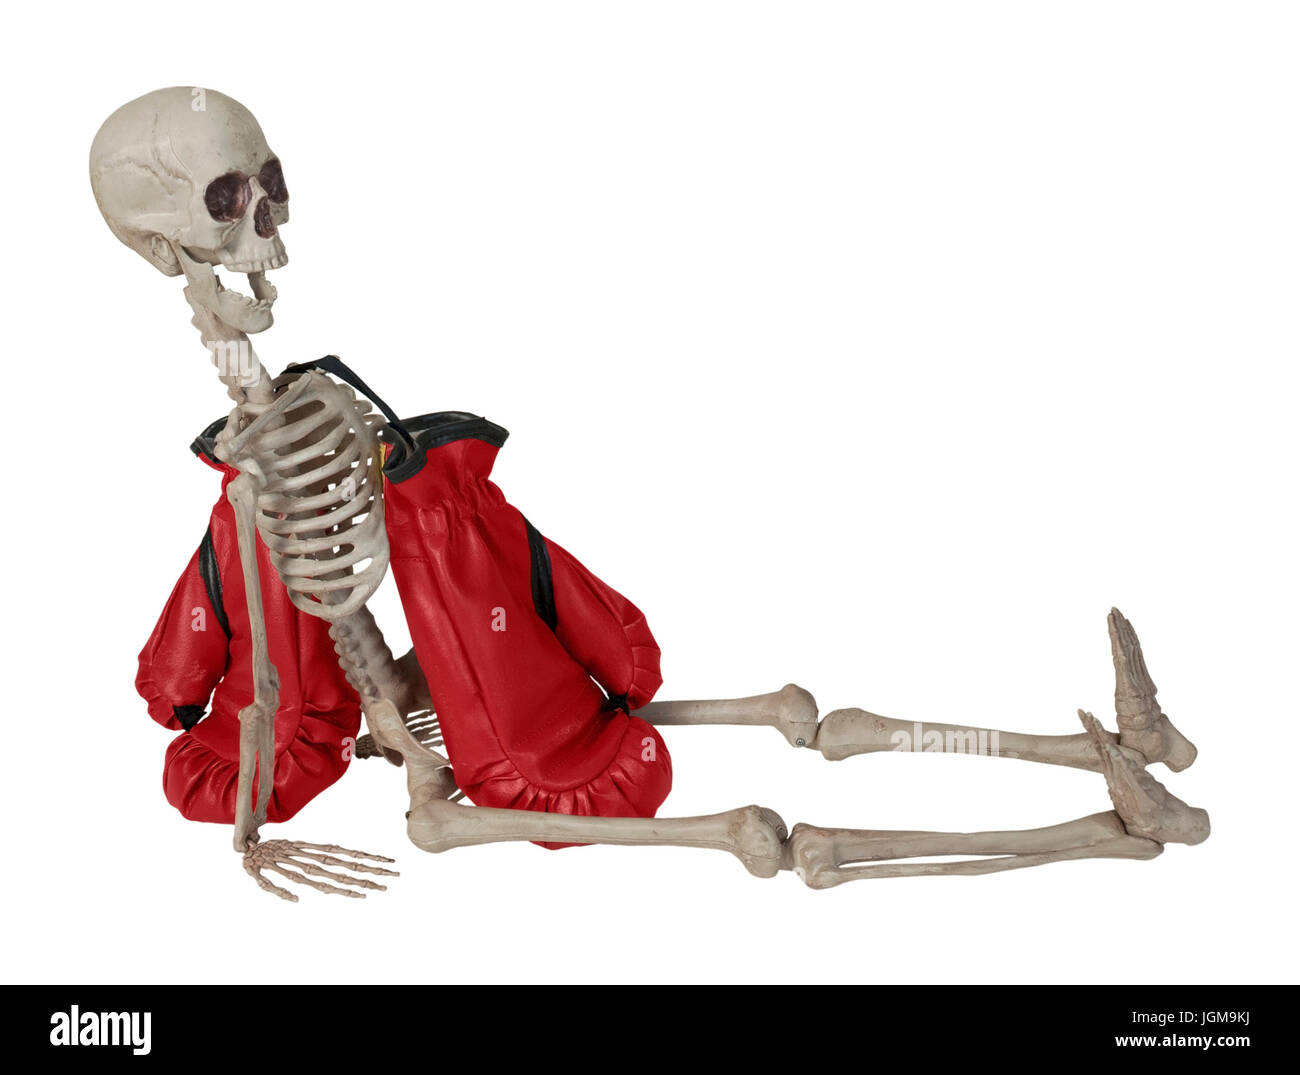 Skeleton with Red Boxing Gloves - path included - Stock Image